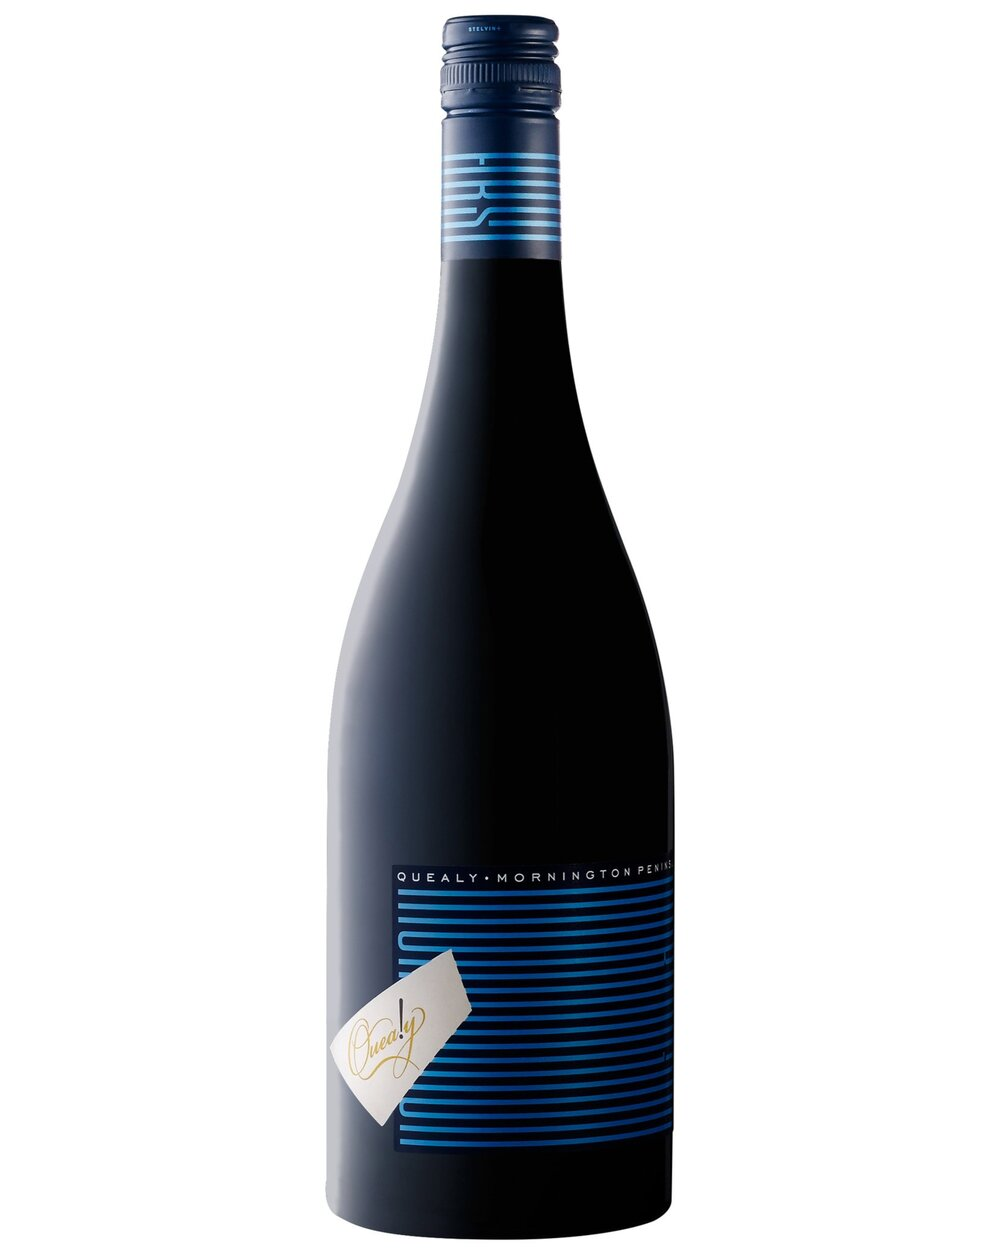 MORNINGTON PENINSULA PINOT NOIR   | クイーリー モーニングトンペンニンシュラ ピノノワール   モーニングトンペンニンシュラ ¥4,295 2016, 750ml, 13.5 %   James Halliday 90 points   オーガニック, Hand Picked, Cultured, 30% Whole Bunch, 100% old oak, 15 months neutral. Bentonite Pad filter low intervention, minimal sulfar additions.  Bright purple-crimson; a very fragrant bouquet leads into a fresh, zesty palate, all pointing to a Great summer pinot.  明るく、紫がかった紅色。 非常に香り豊かなブーケが新鮮で溌剌とした味わいへと誘い、そのすべてが夏のピノ・ノワールを表現しています。